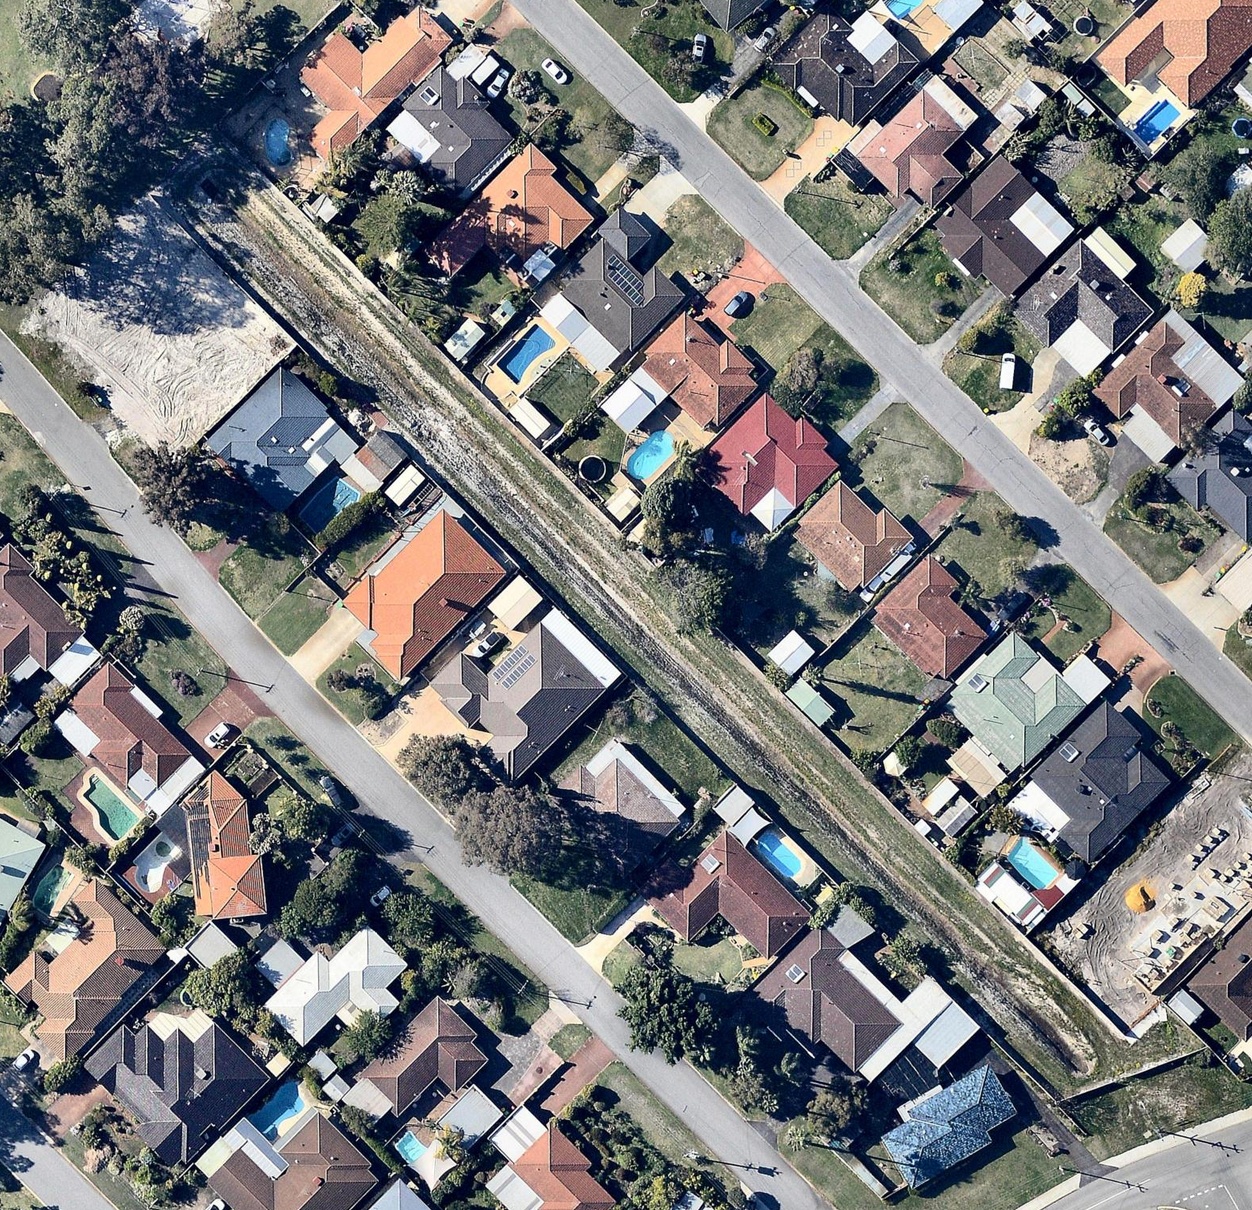 An aerial view of houses backing onto a 90-metre long open drain in Perth